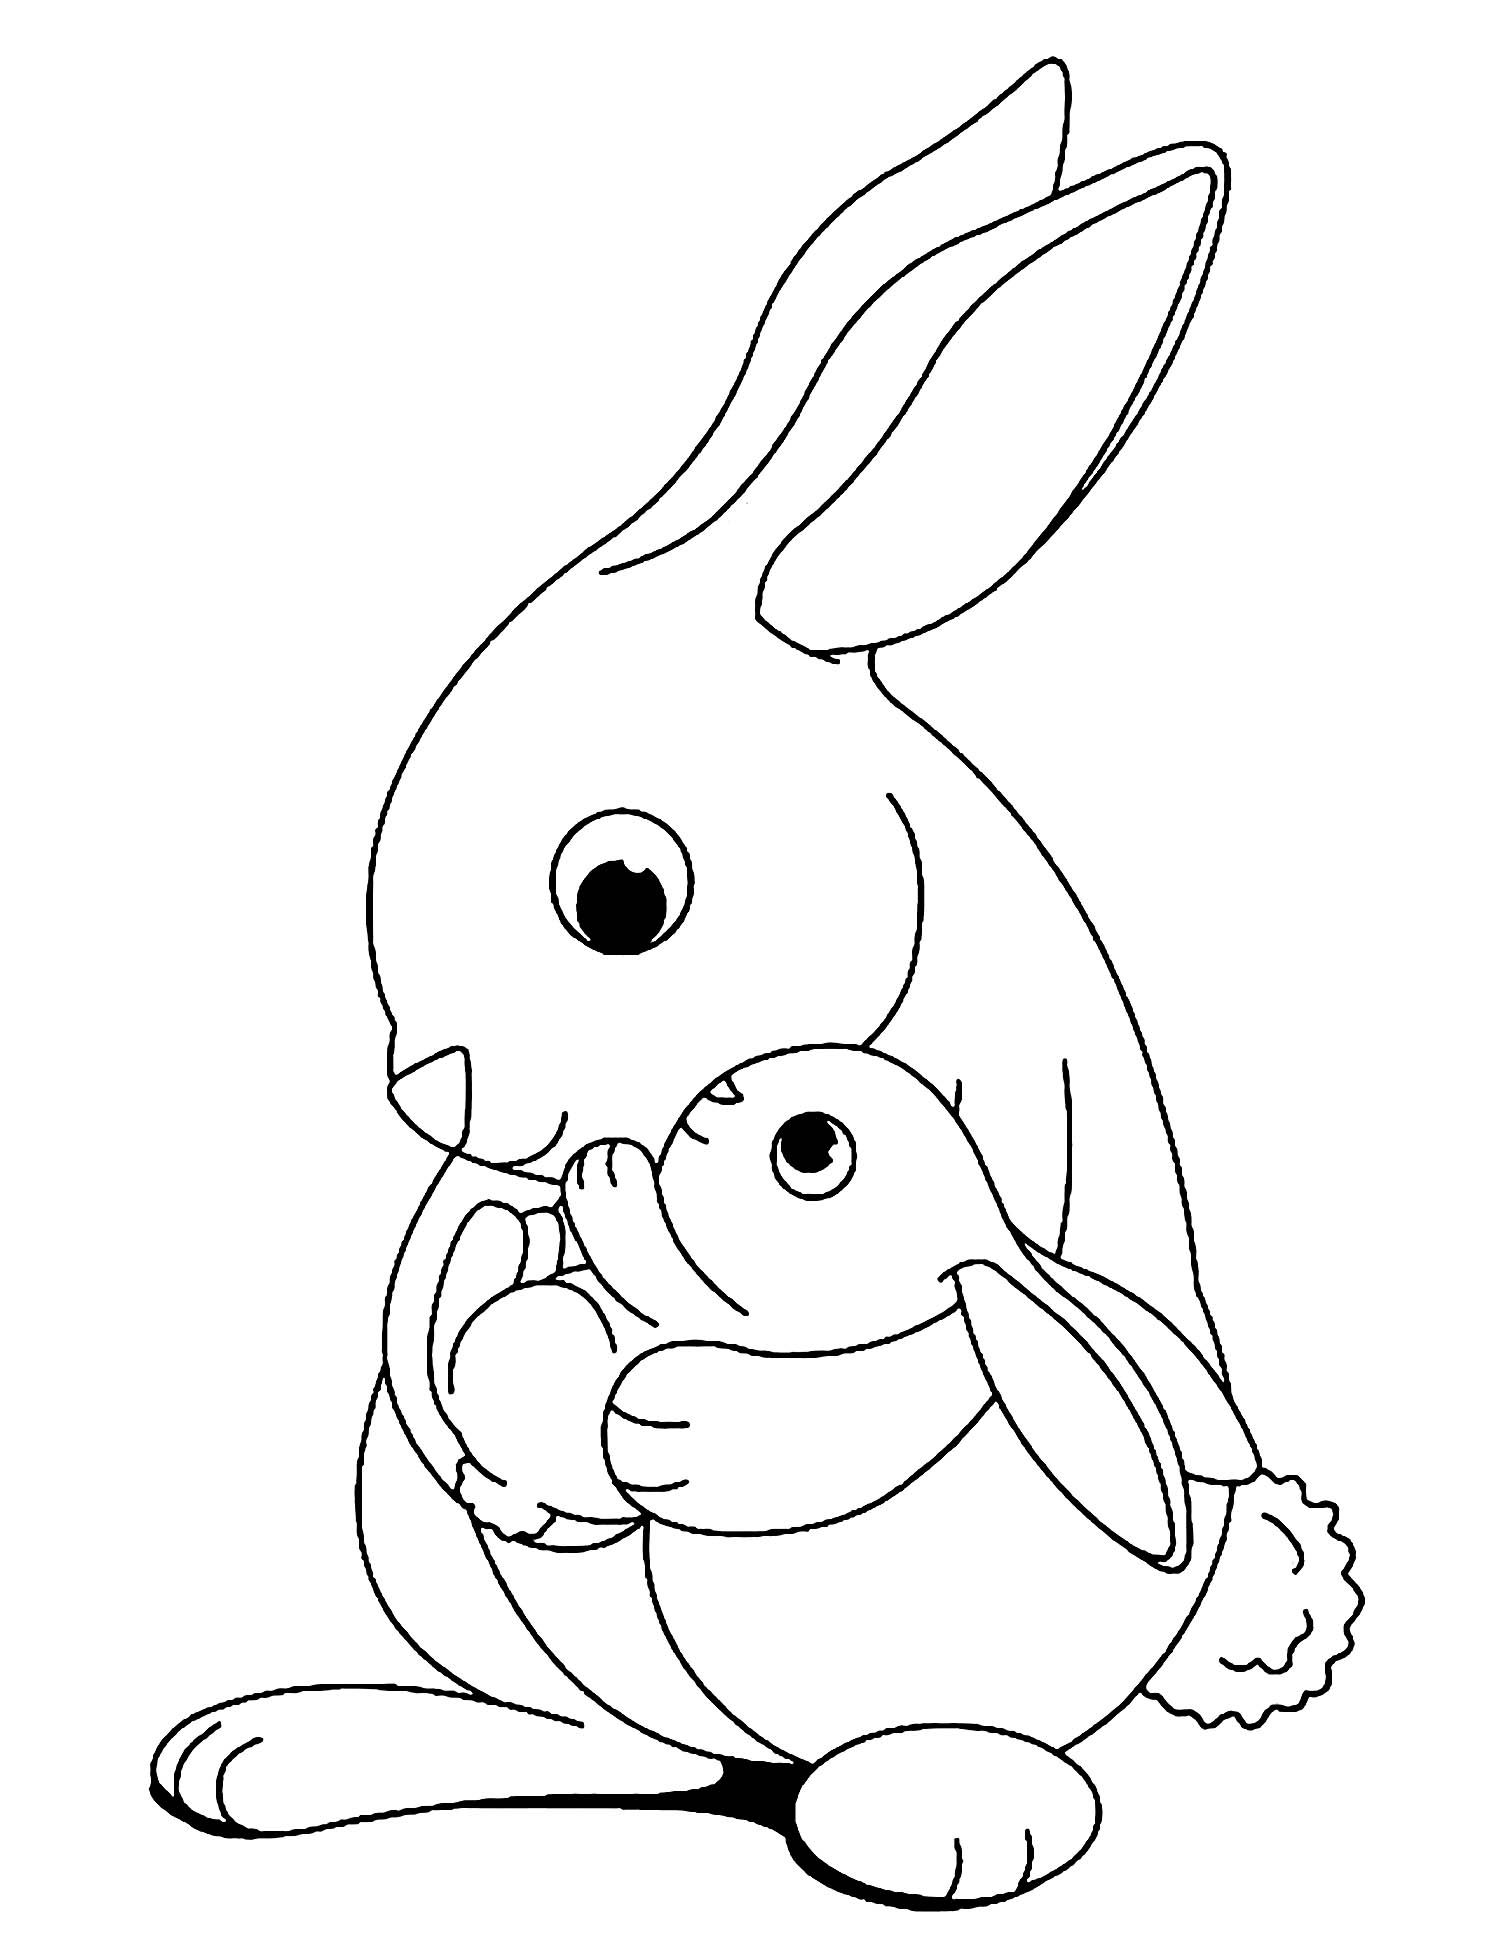 rabbit pictures for kids for colouring printable rabbit coloring pages for kids cool2bkids for pictures colouring kids for rabbit